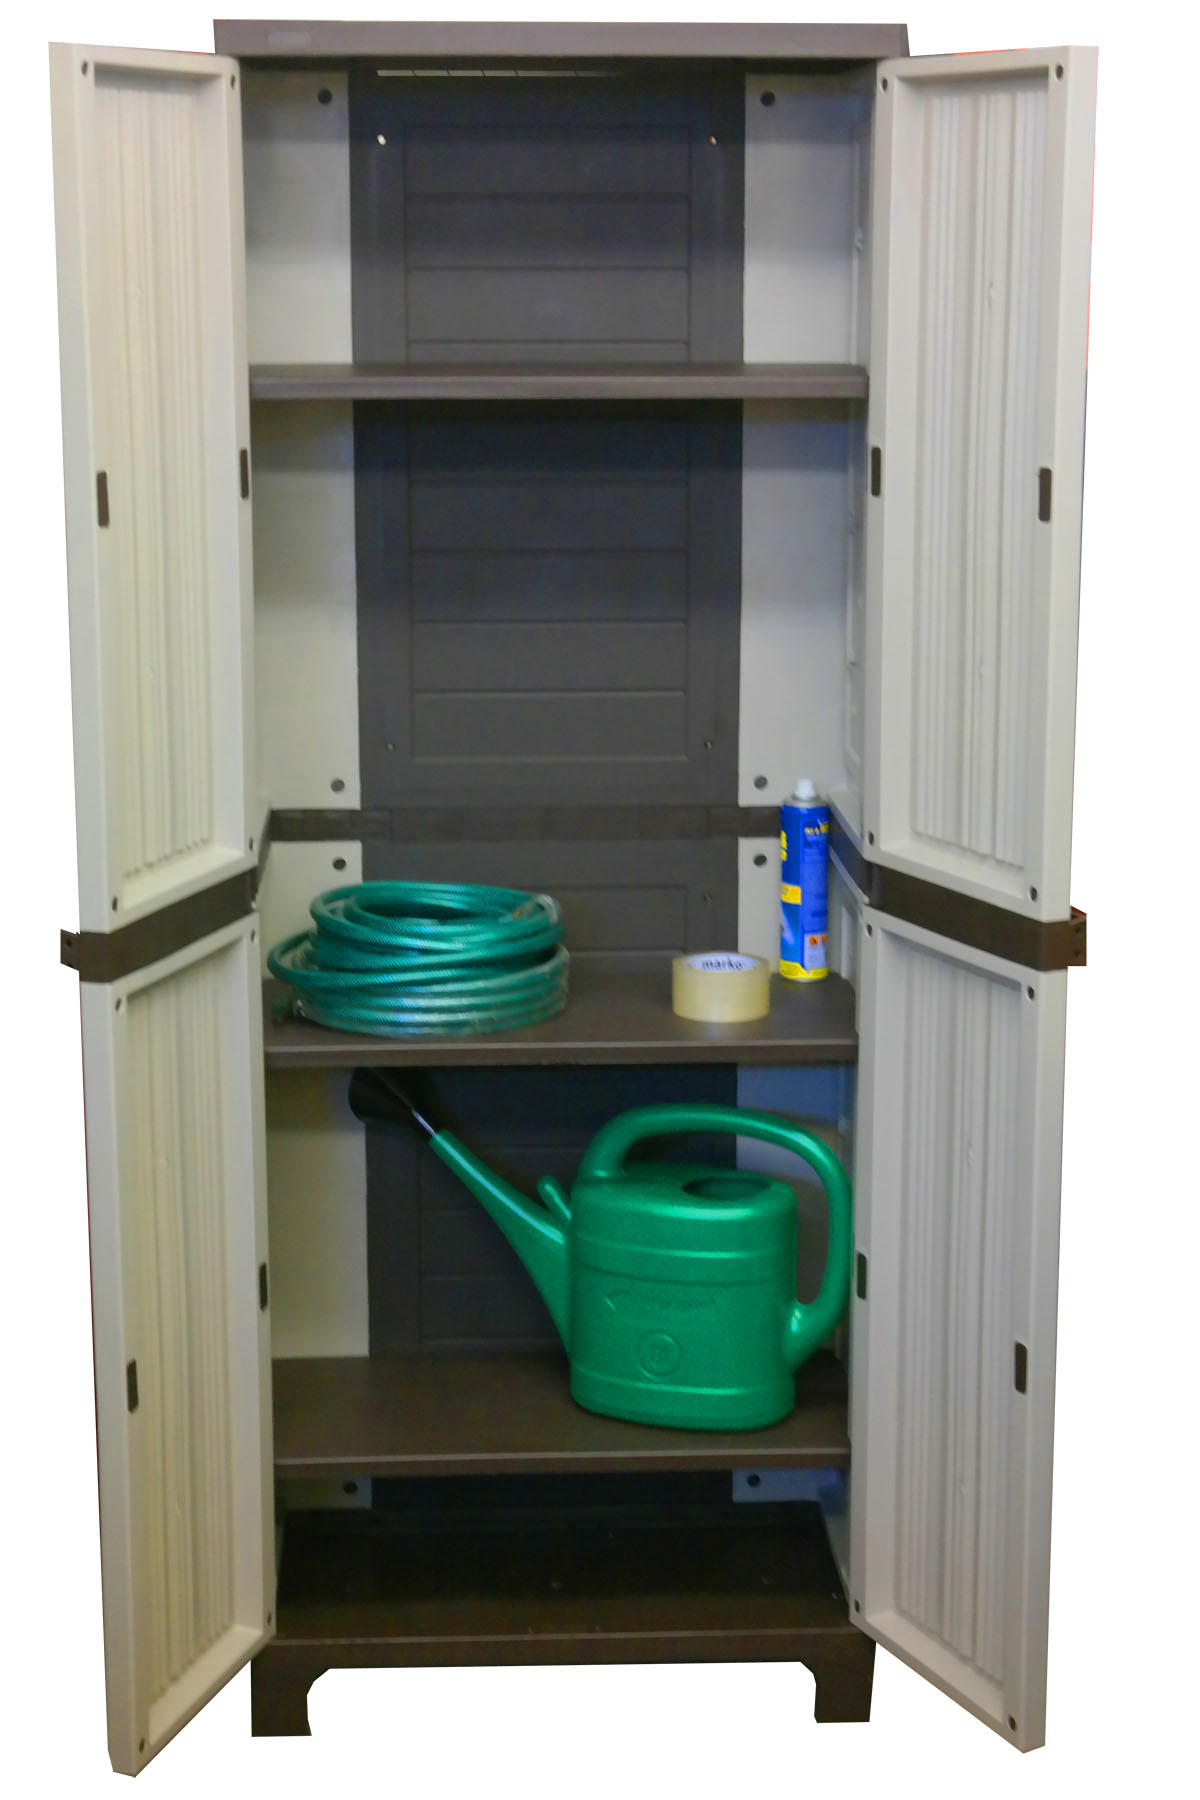 Best ideas about Garden Storage Cabinet . Save or Pin Tall Outdoor Plastic Storage Utility Cabinet Garden Now.